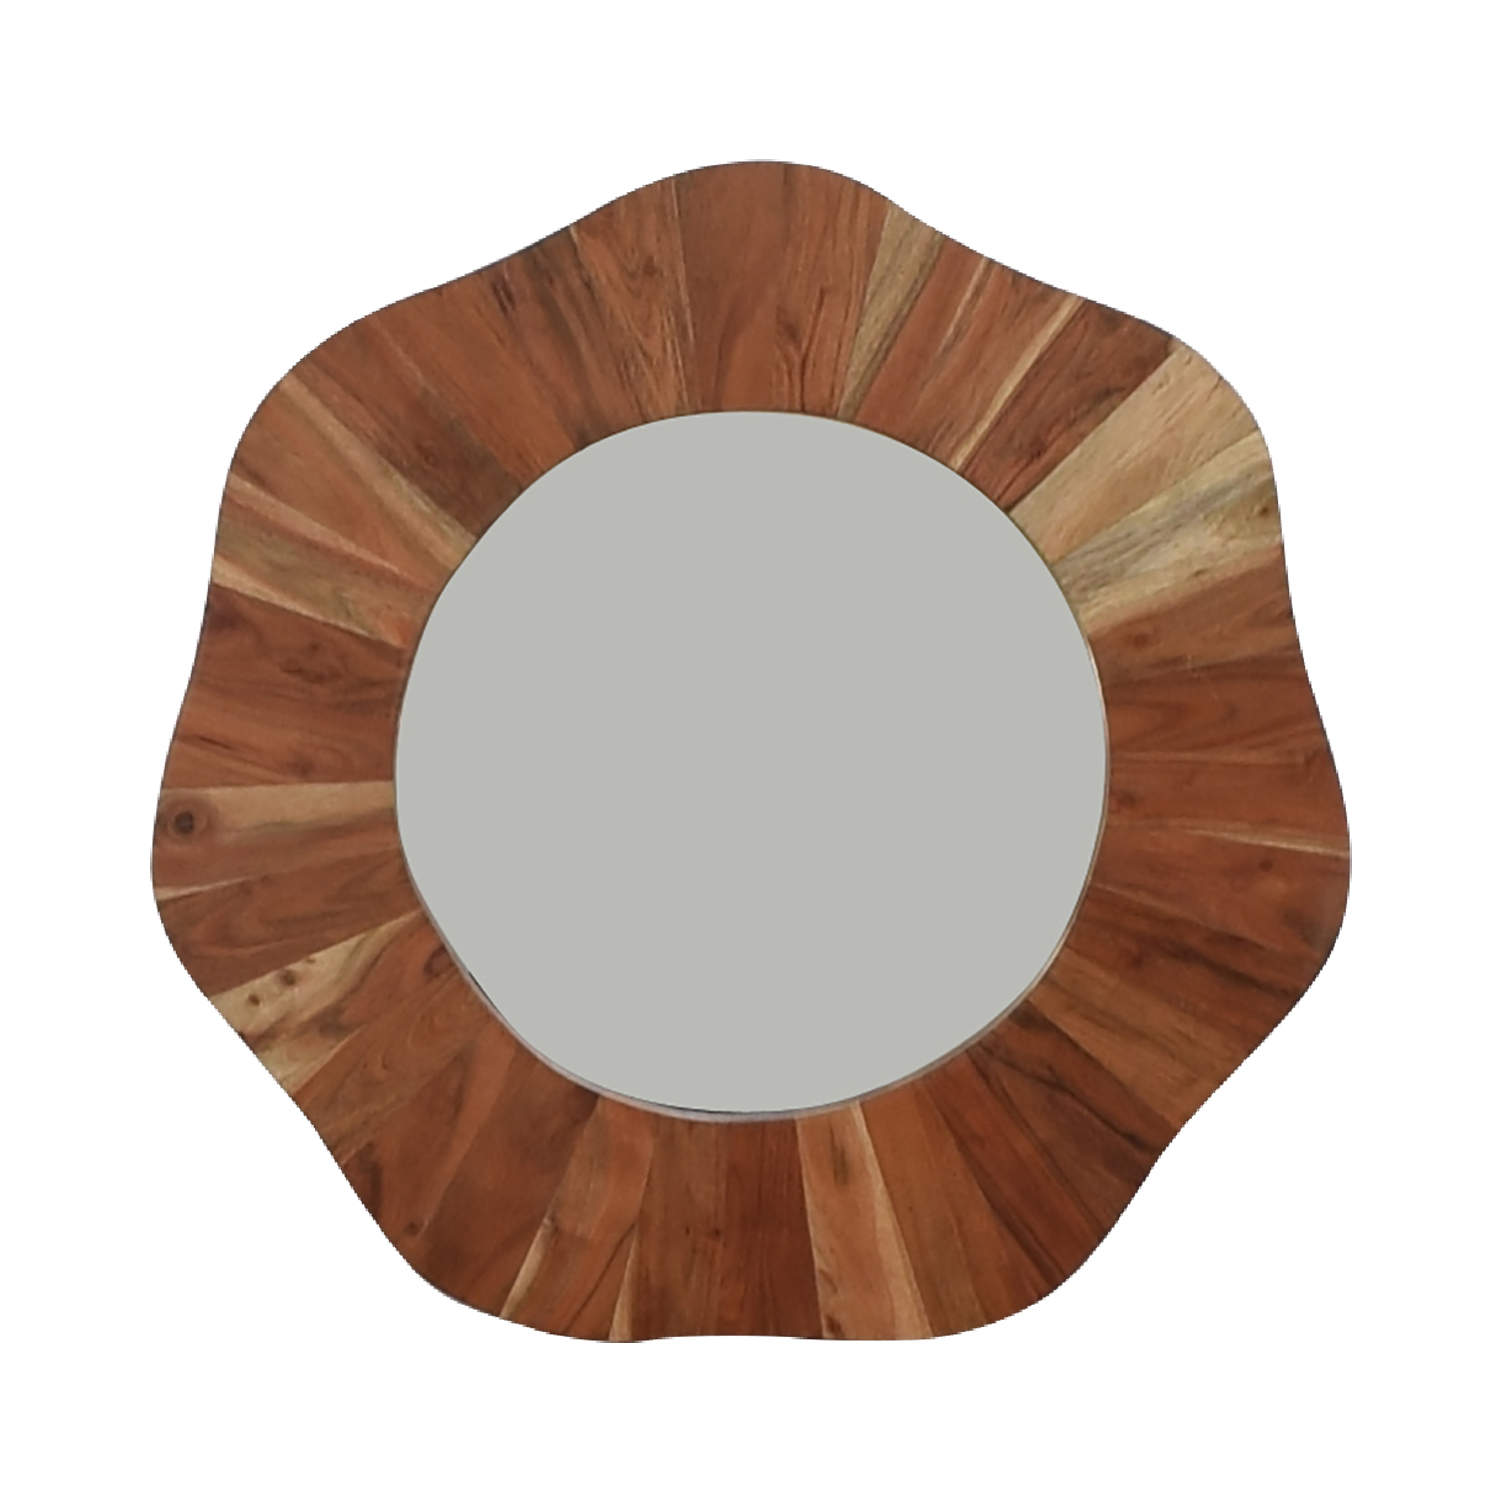 Rustic Round Wood Wall Mirror coupon